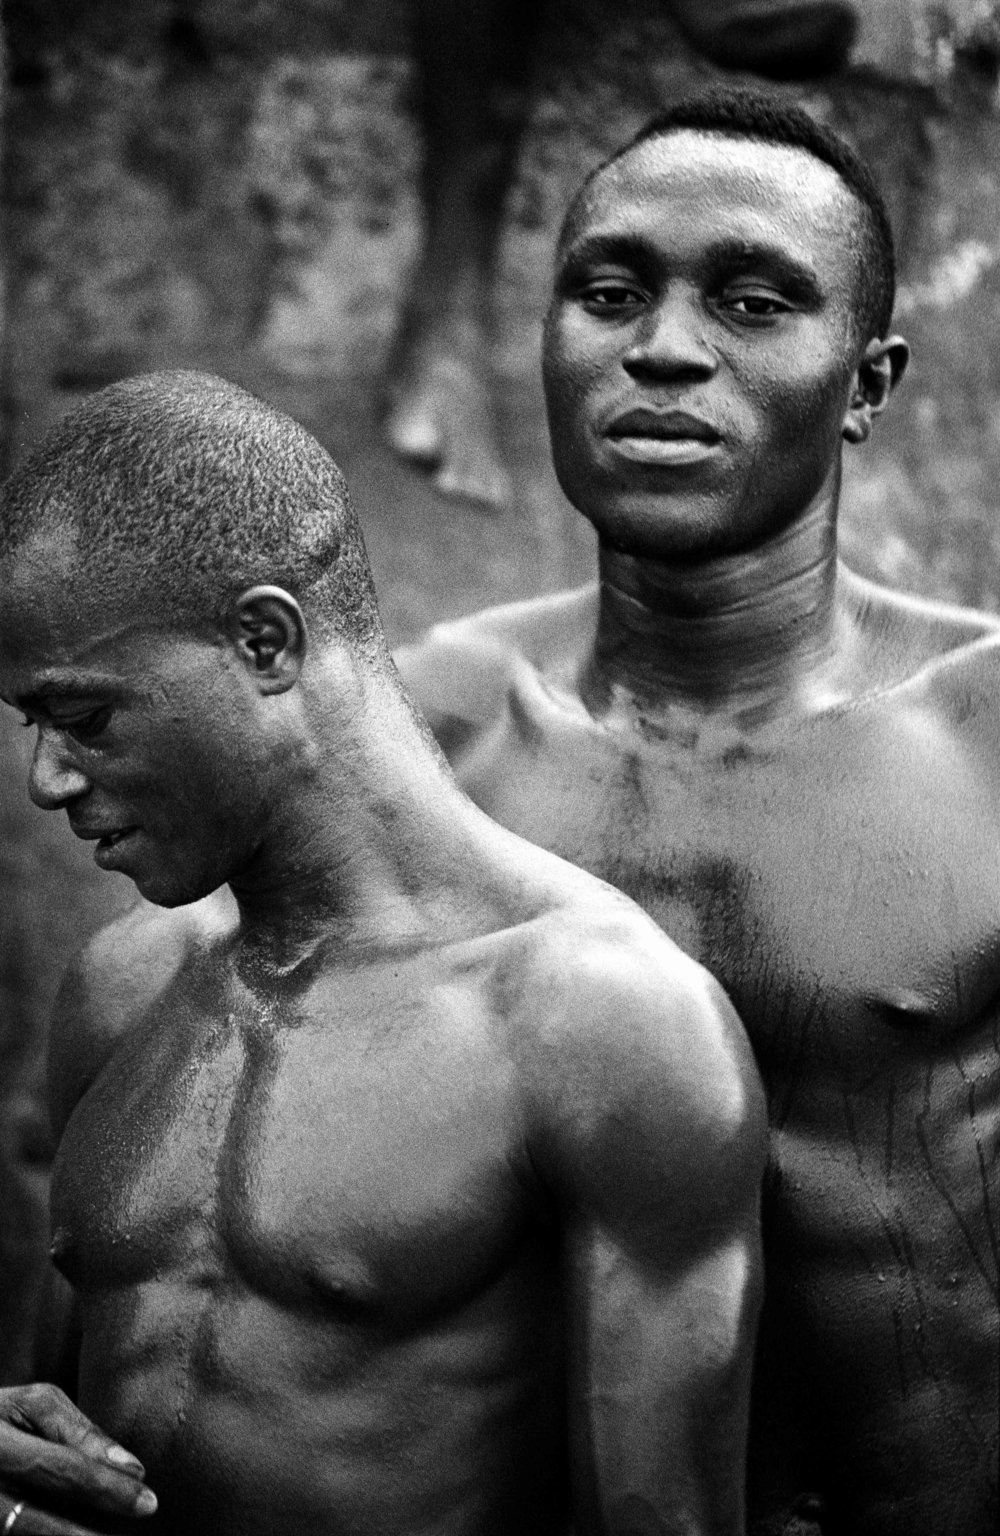 Sierra Leone, Freetown, April 2003, Portrait of two players of the team.